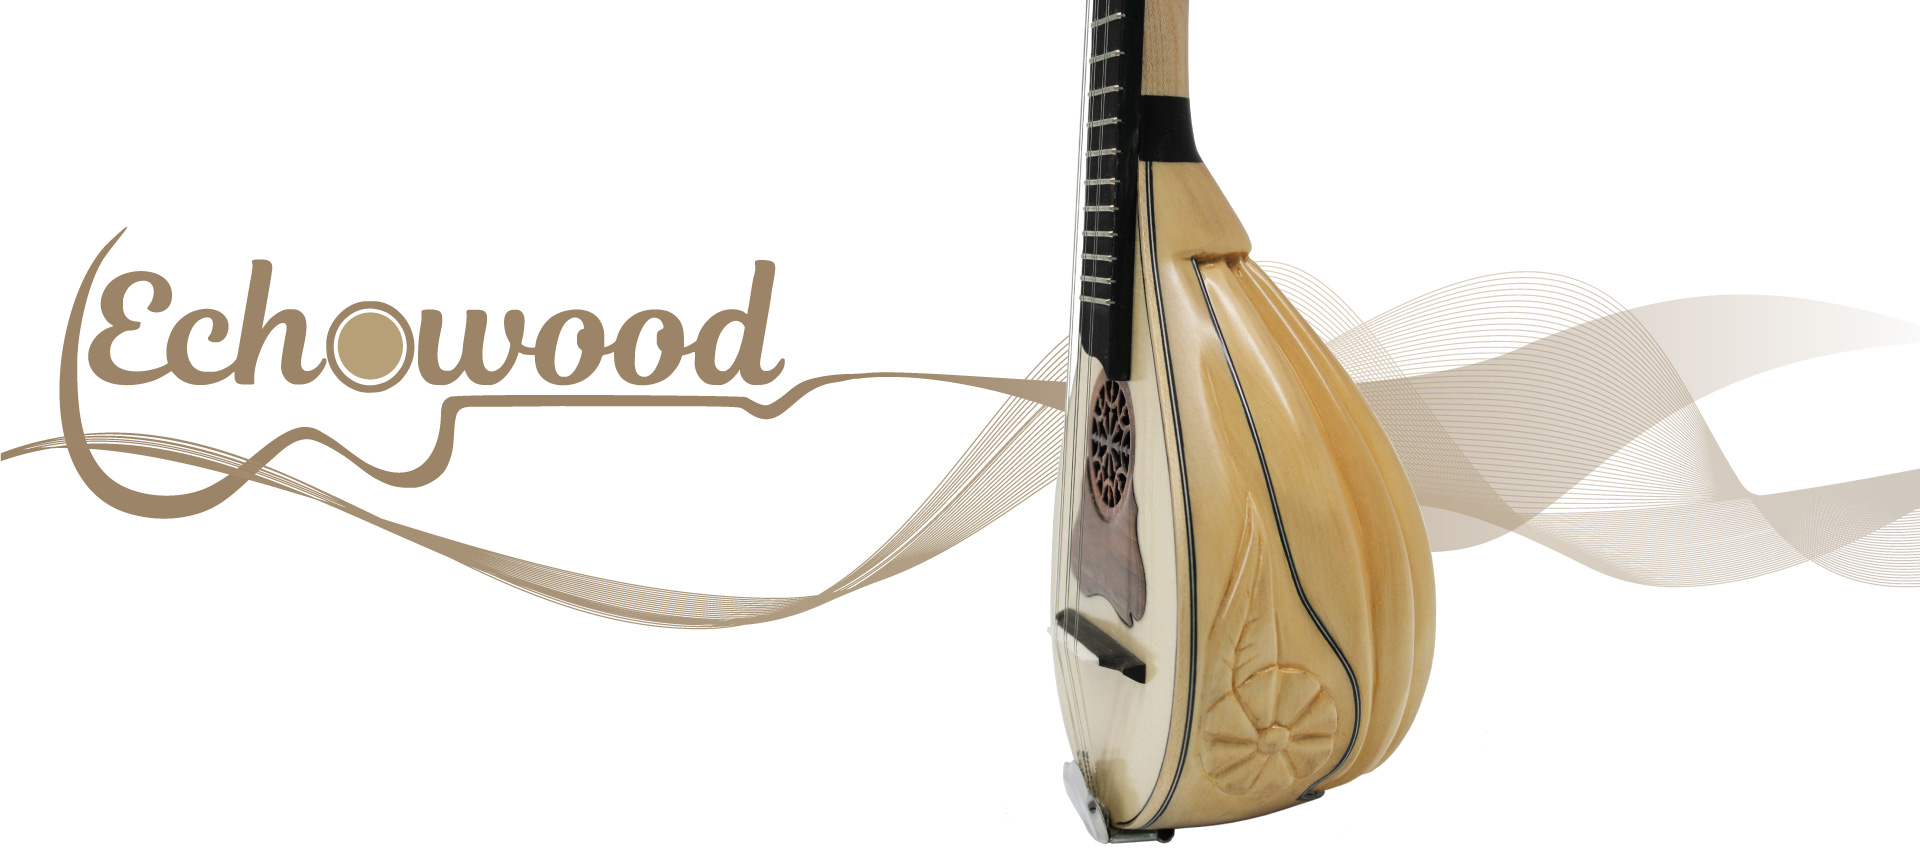 Musical instruments and luthier supplies